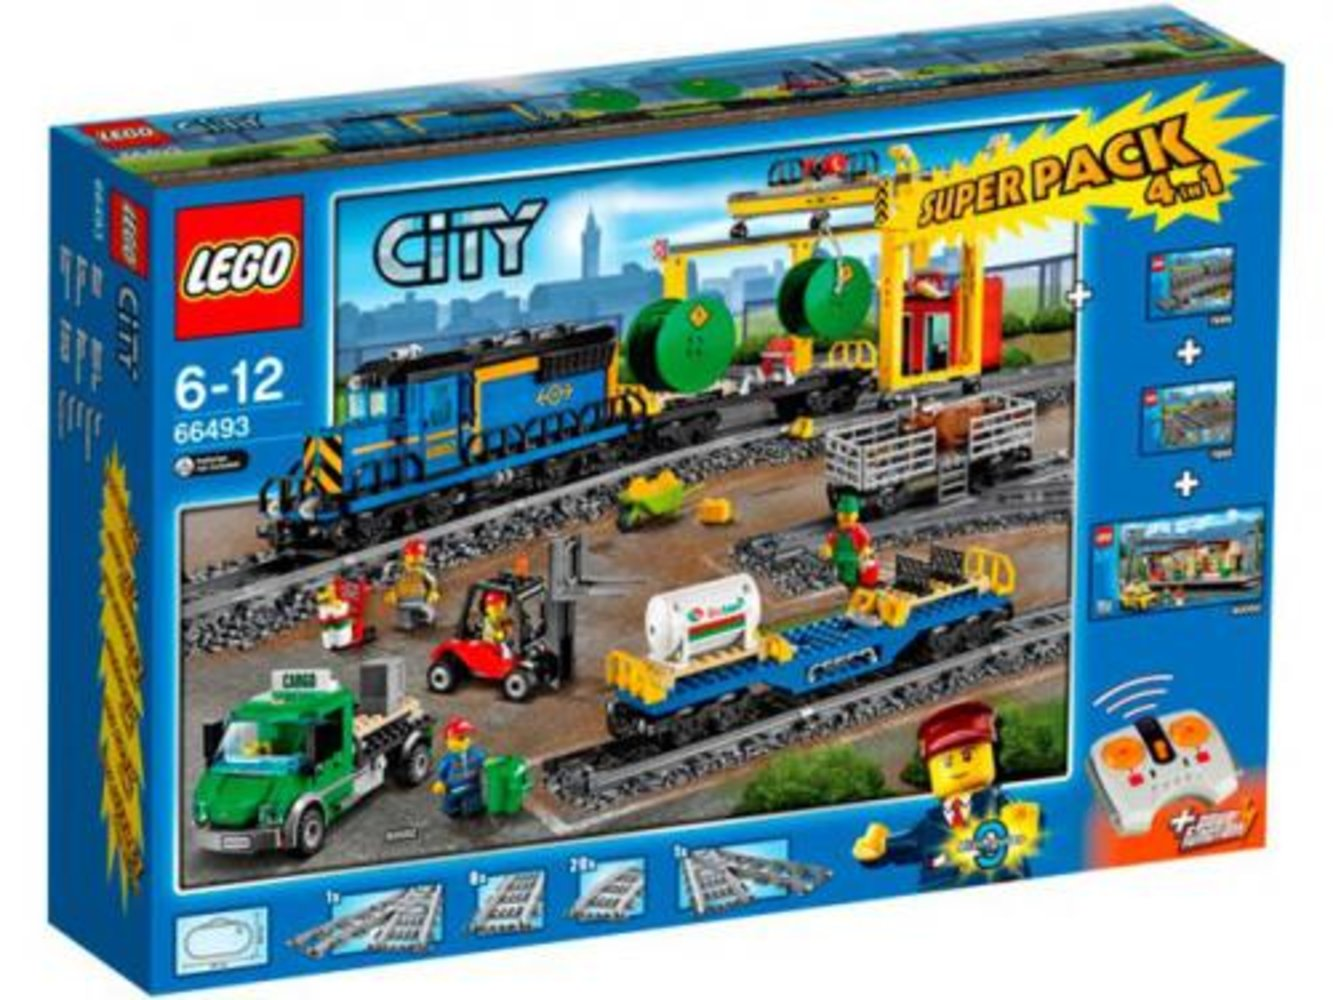 City Train Super Pack 4 in 1